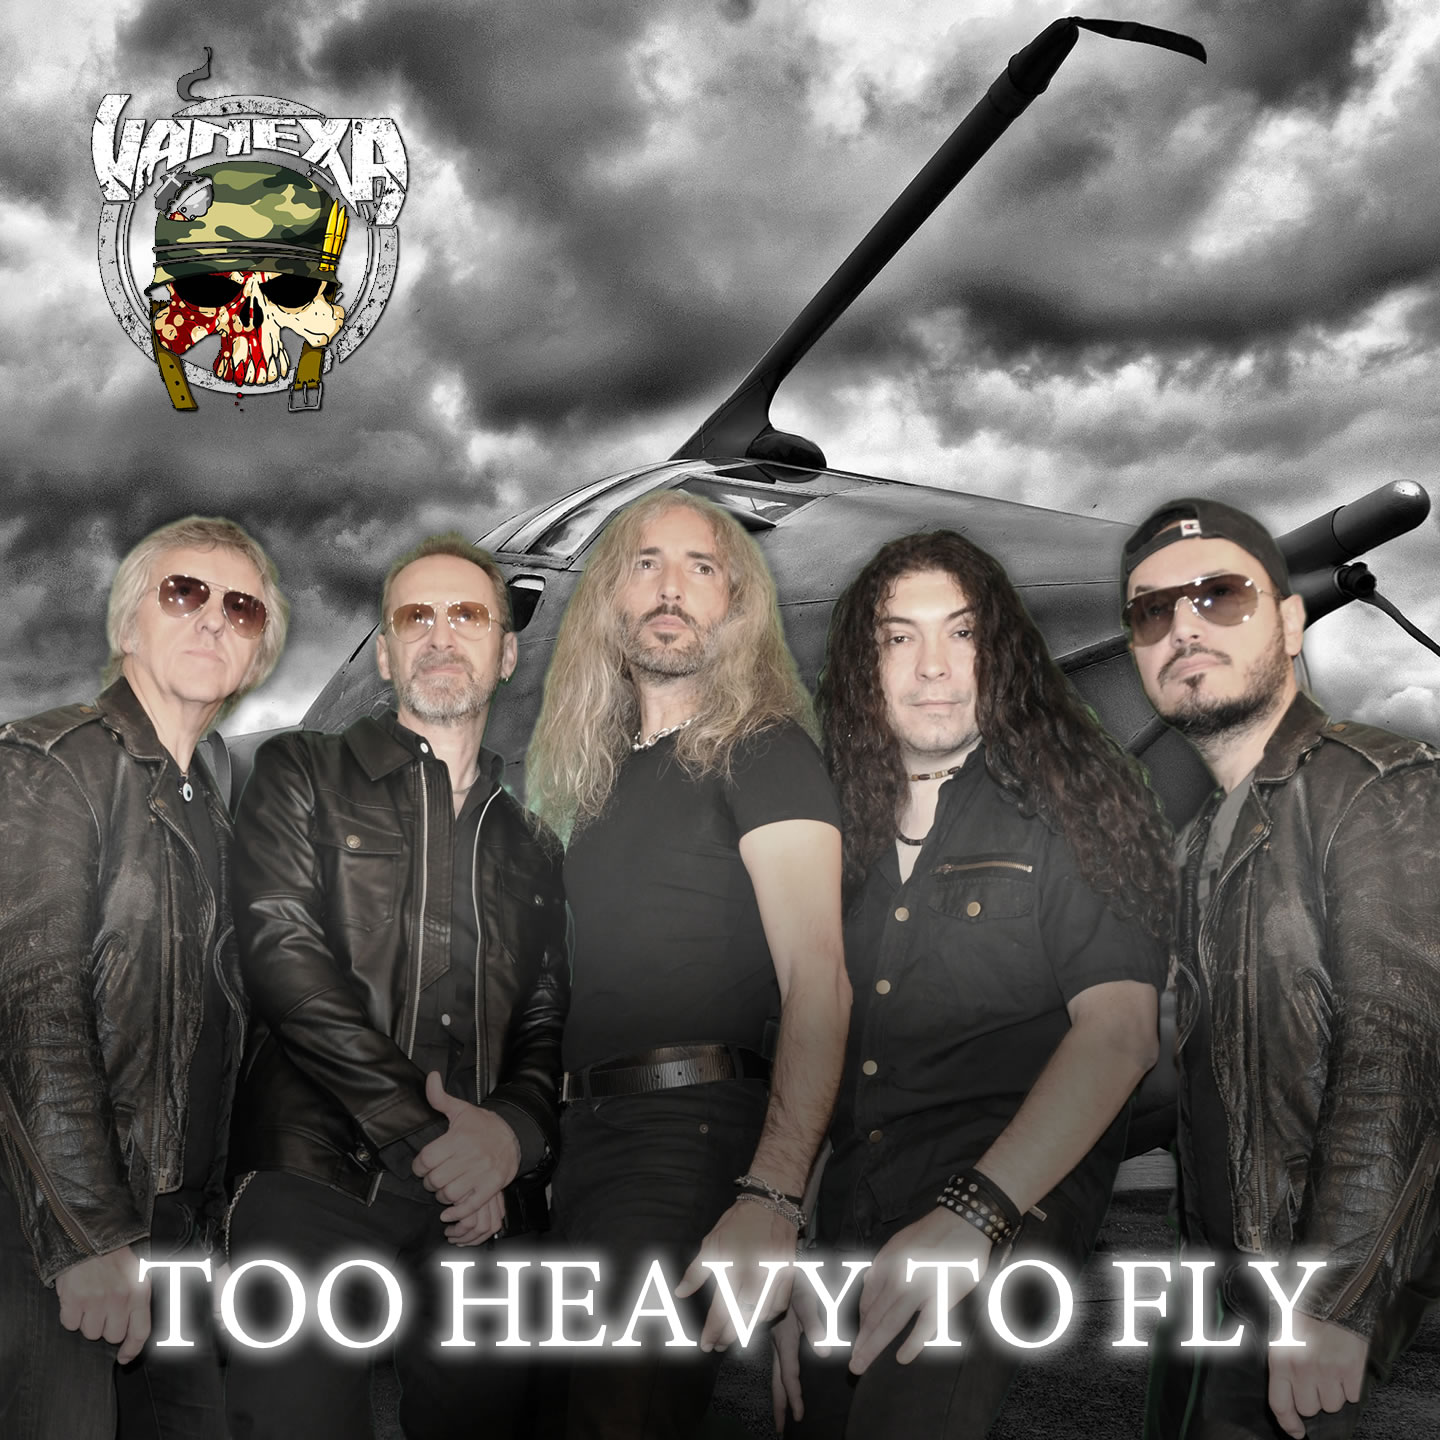 Too Heavy To Fly